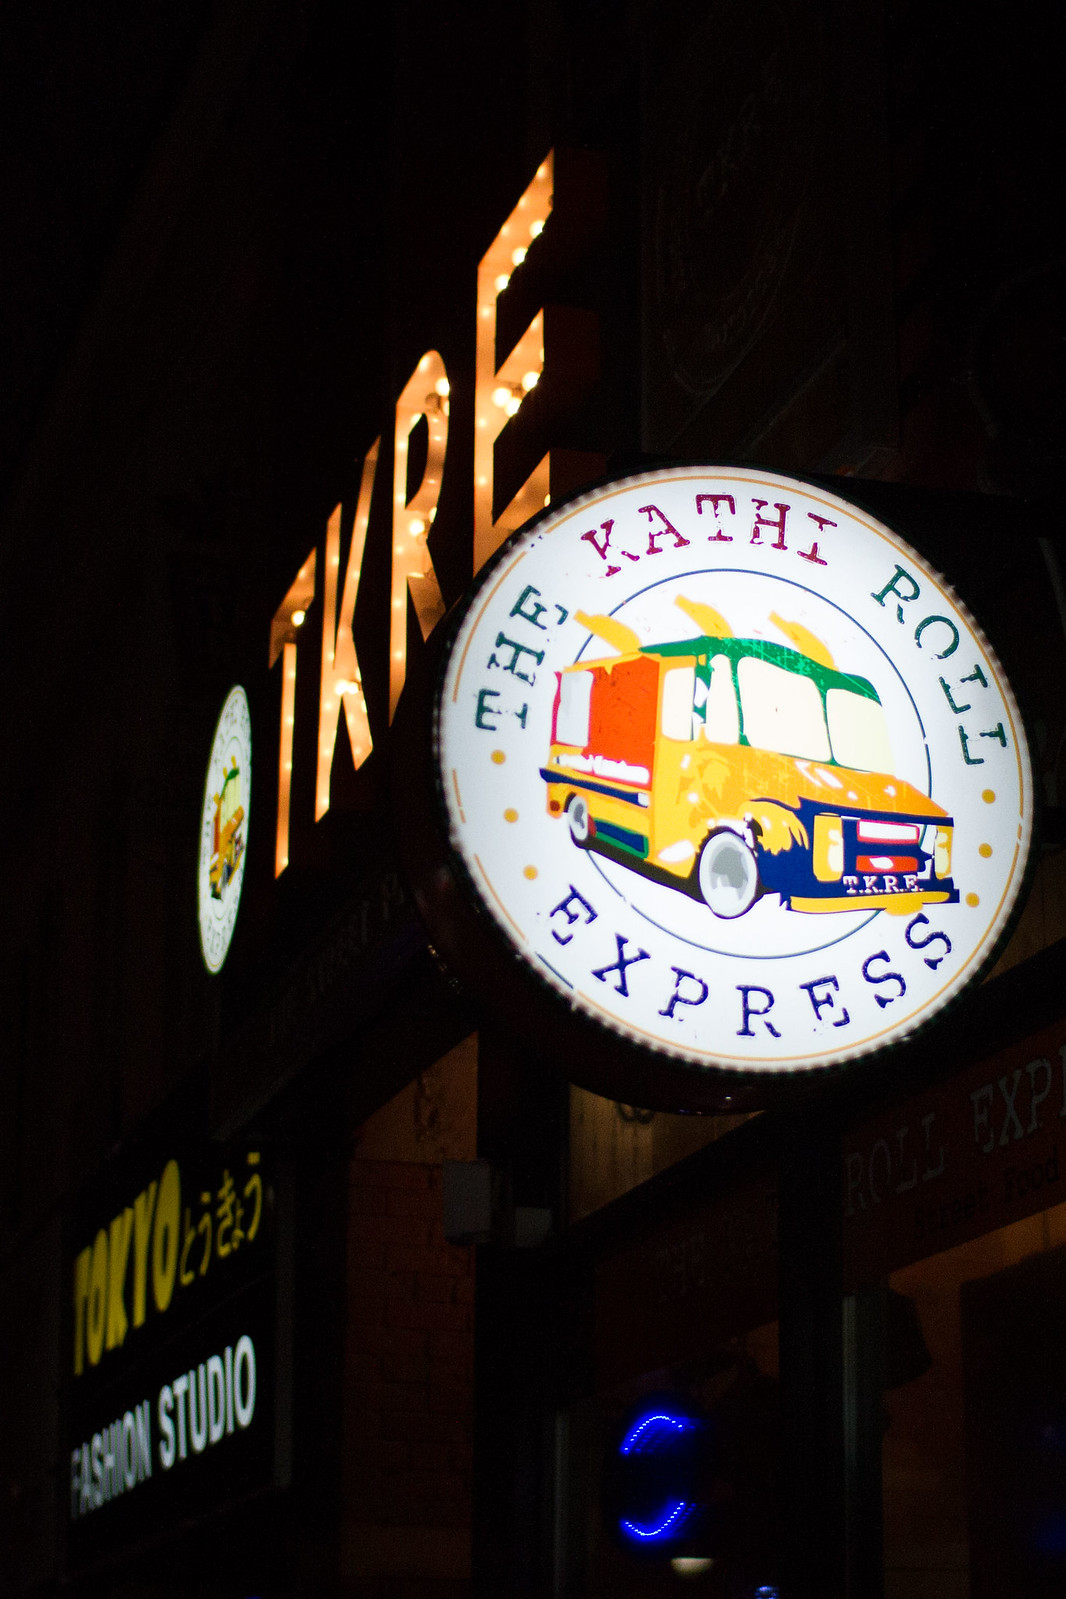 The Kathi Roll Express